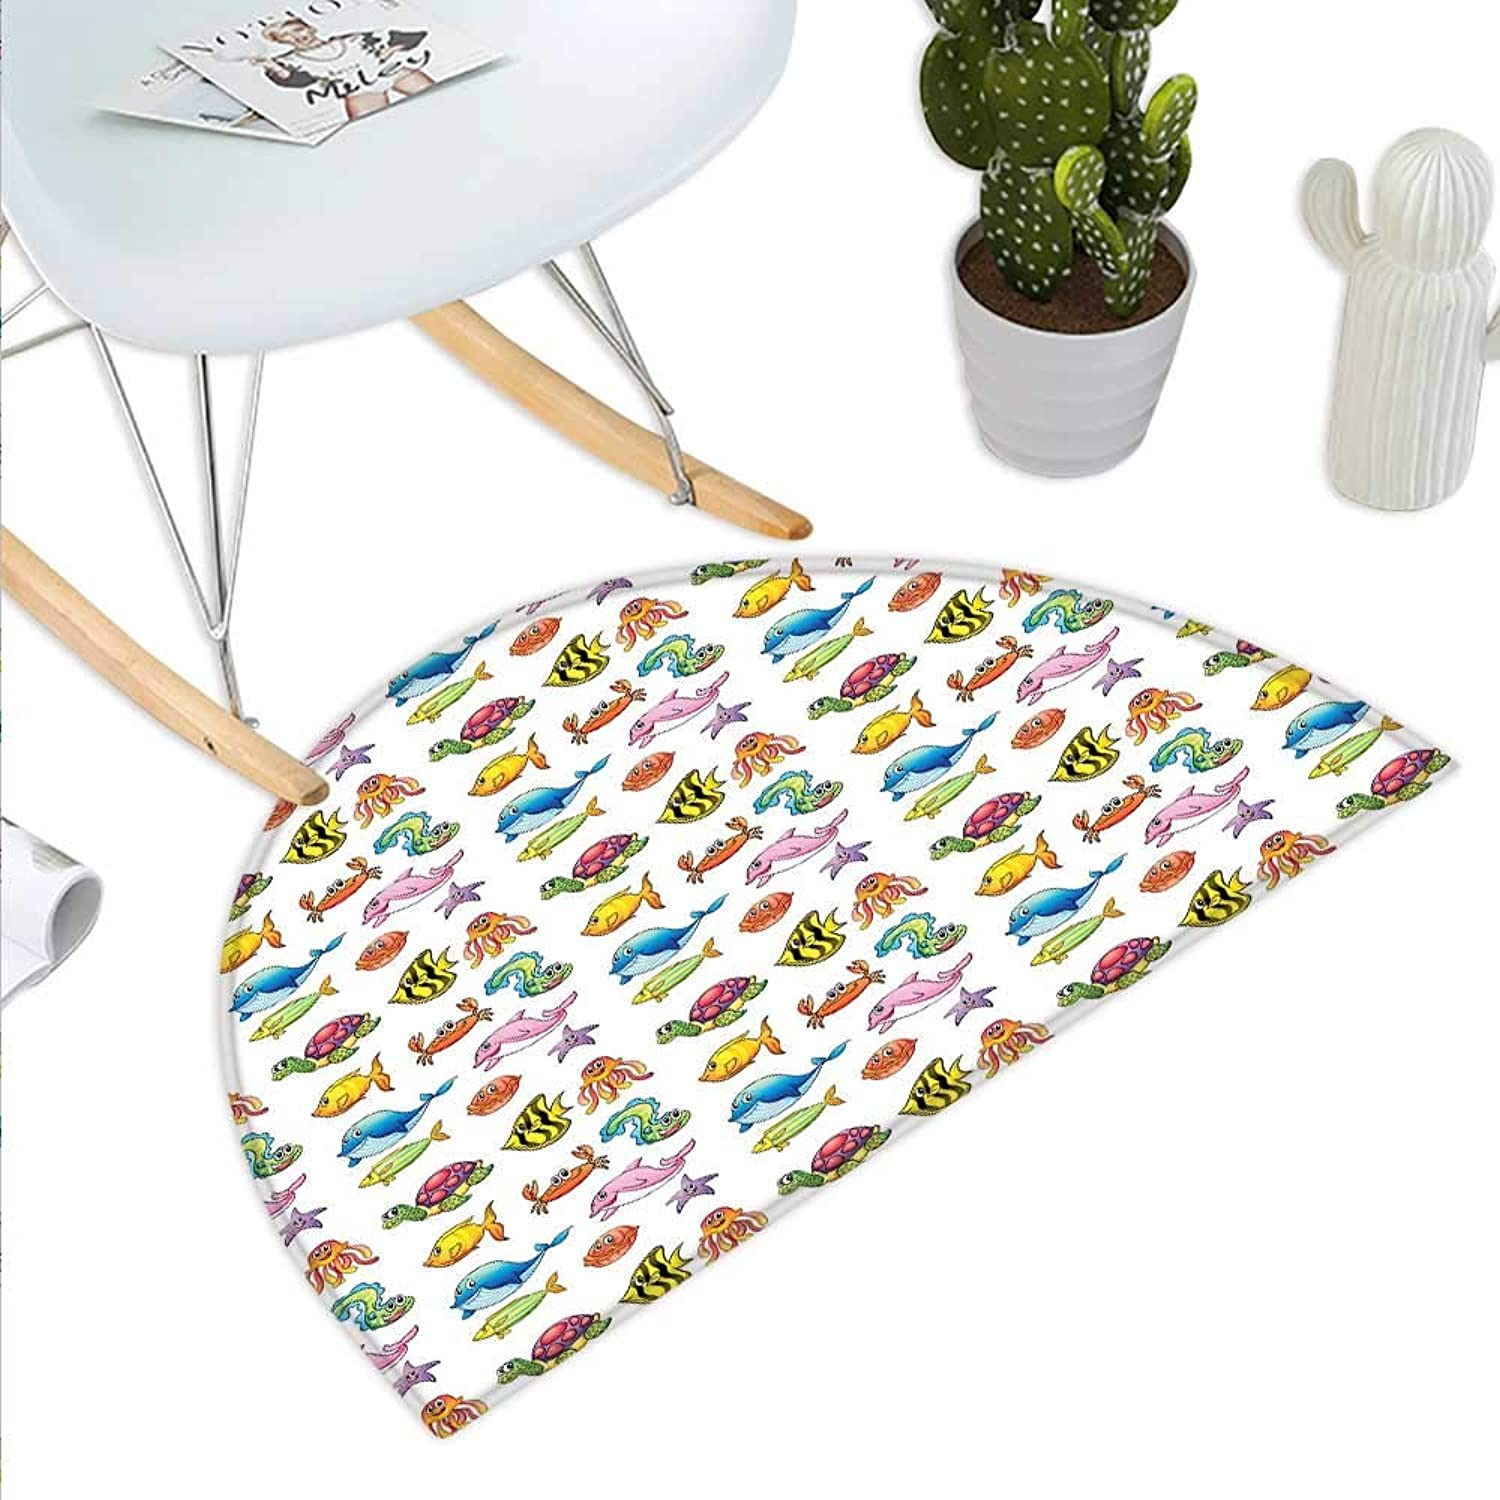 Boys Semicircle Doormat Happy Fauna of The High Seas Smiling Characters Fishes Turtles Crabs Octopus Starfish Halfmoon doormats H 35.4  xD 53.1  Multicolor